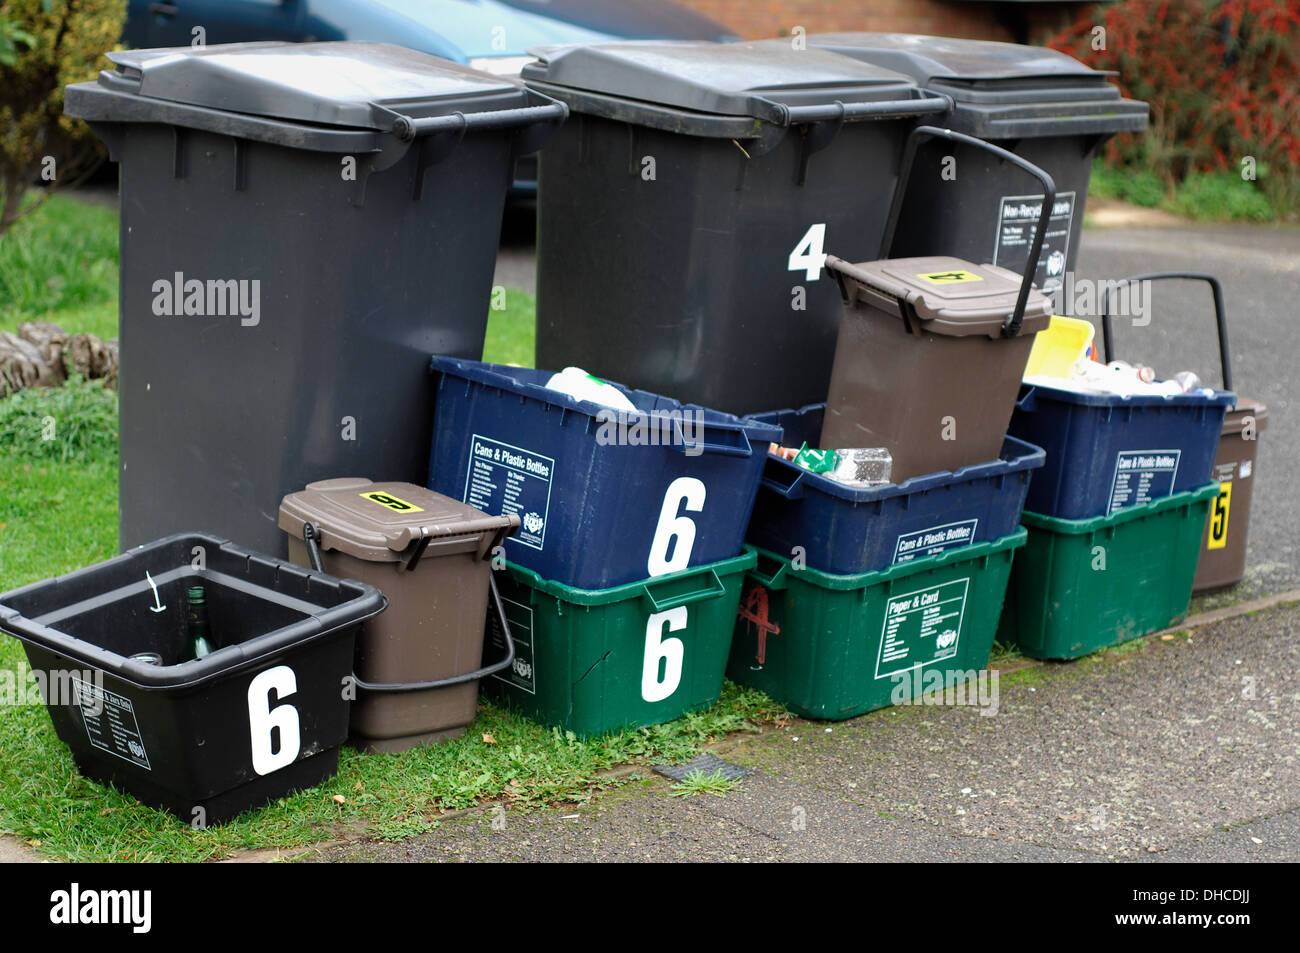 Rubbish bins recycling - Stock Image